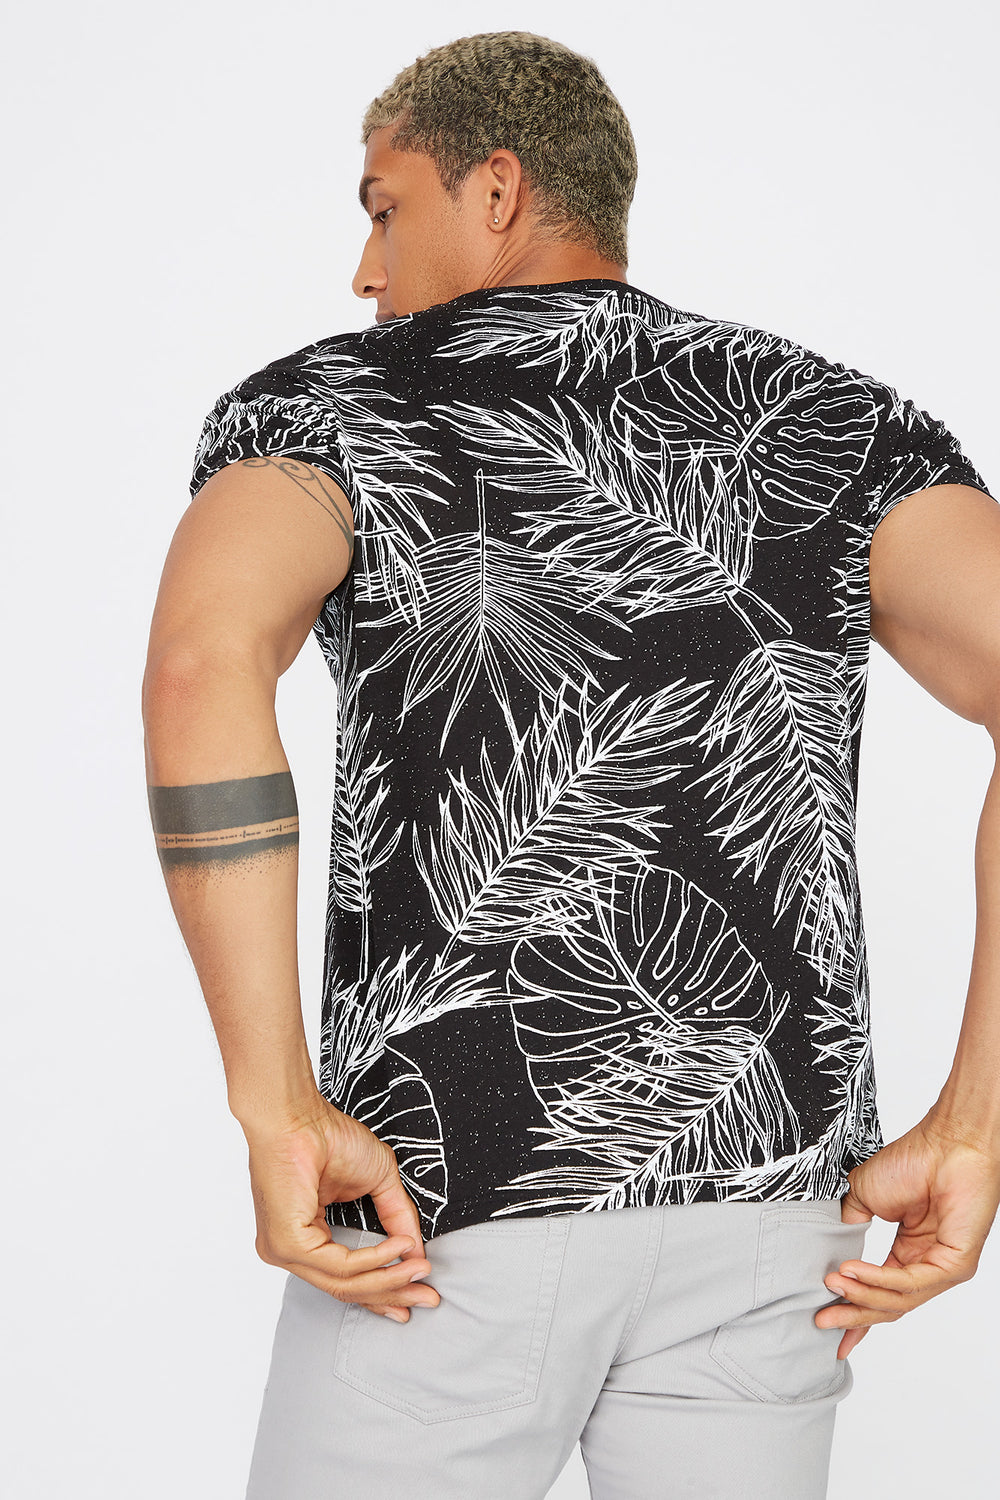 Speckled Palm Leaf Printed T-Shirt Black